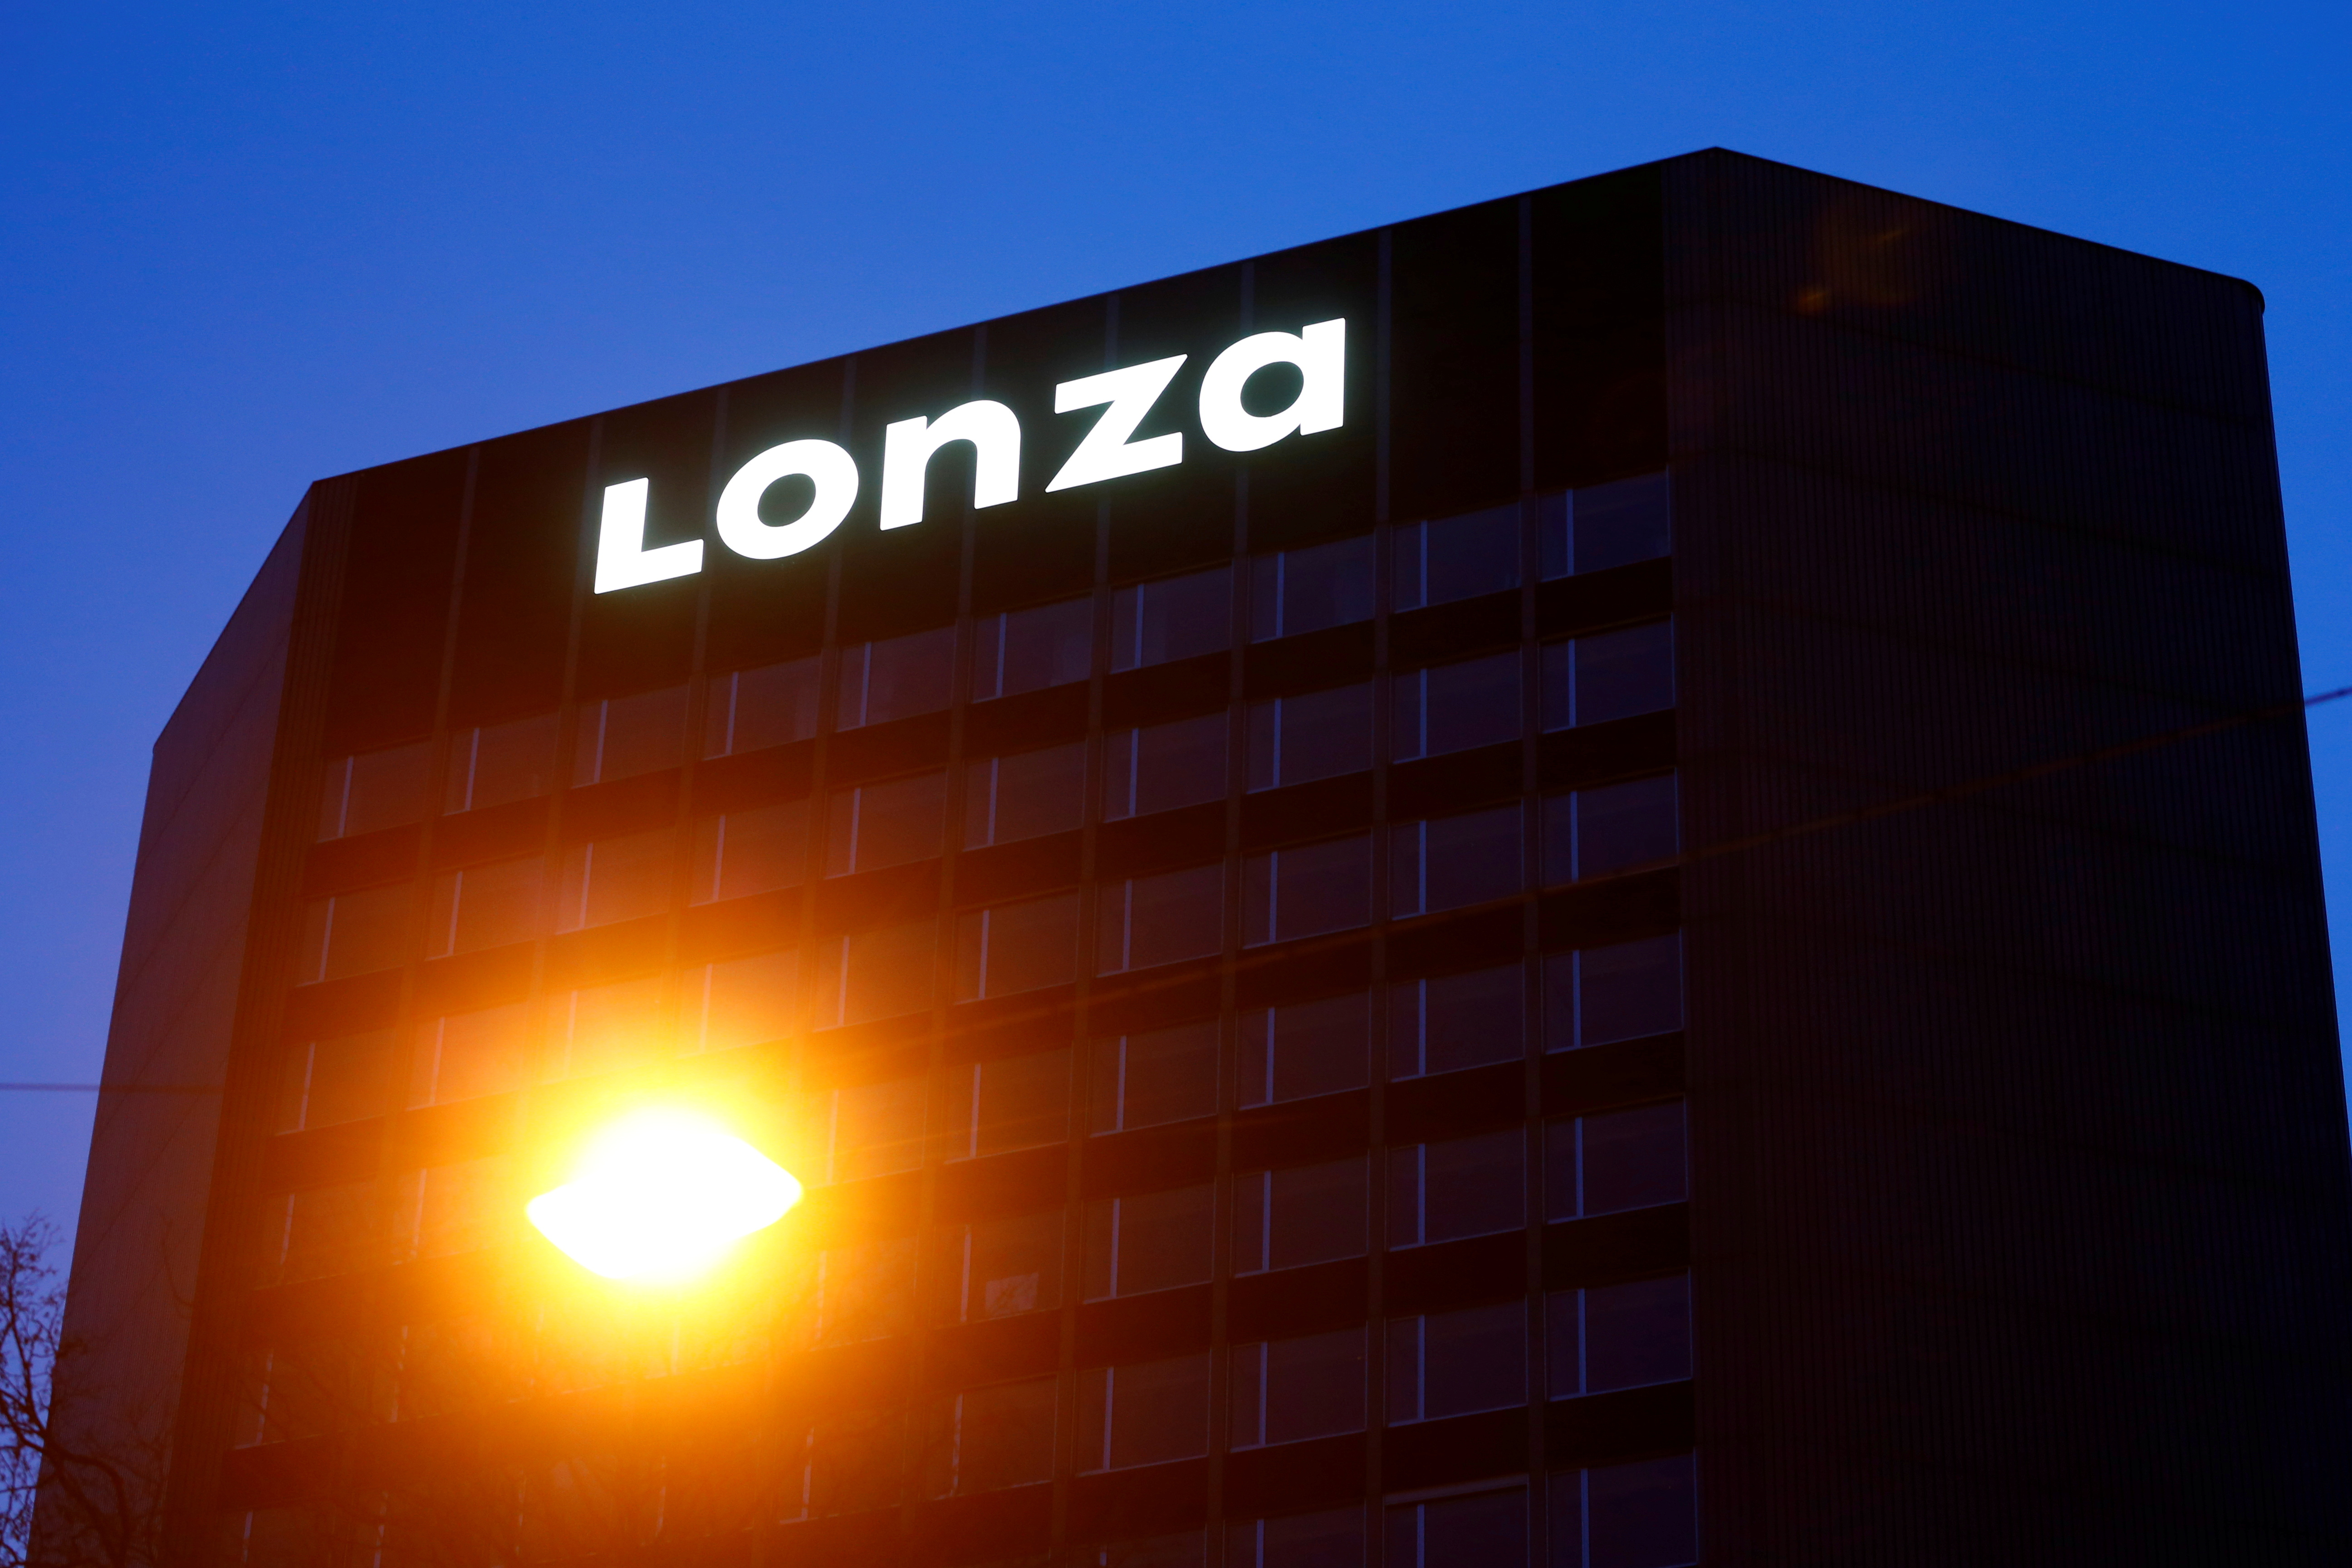 The logo of Swiss pharmaceutical group Lonza is seen at its headquarters in Basel, Switzerland March 2, 2020. REUTERS/Arnd Wiegmann